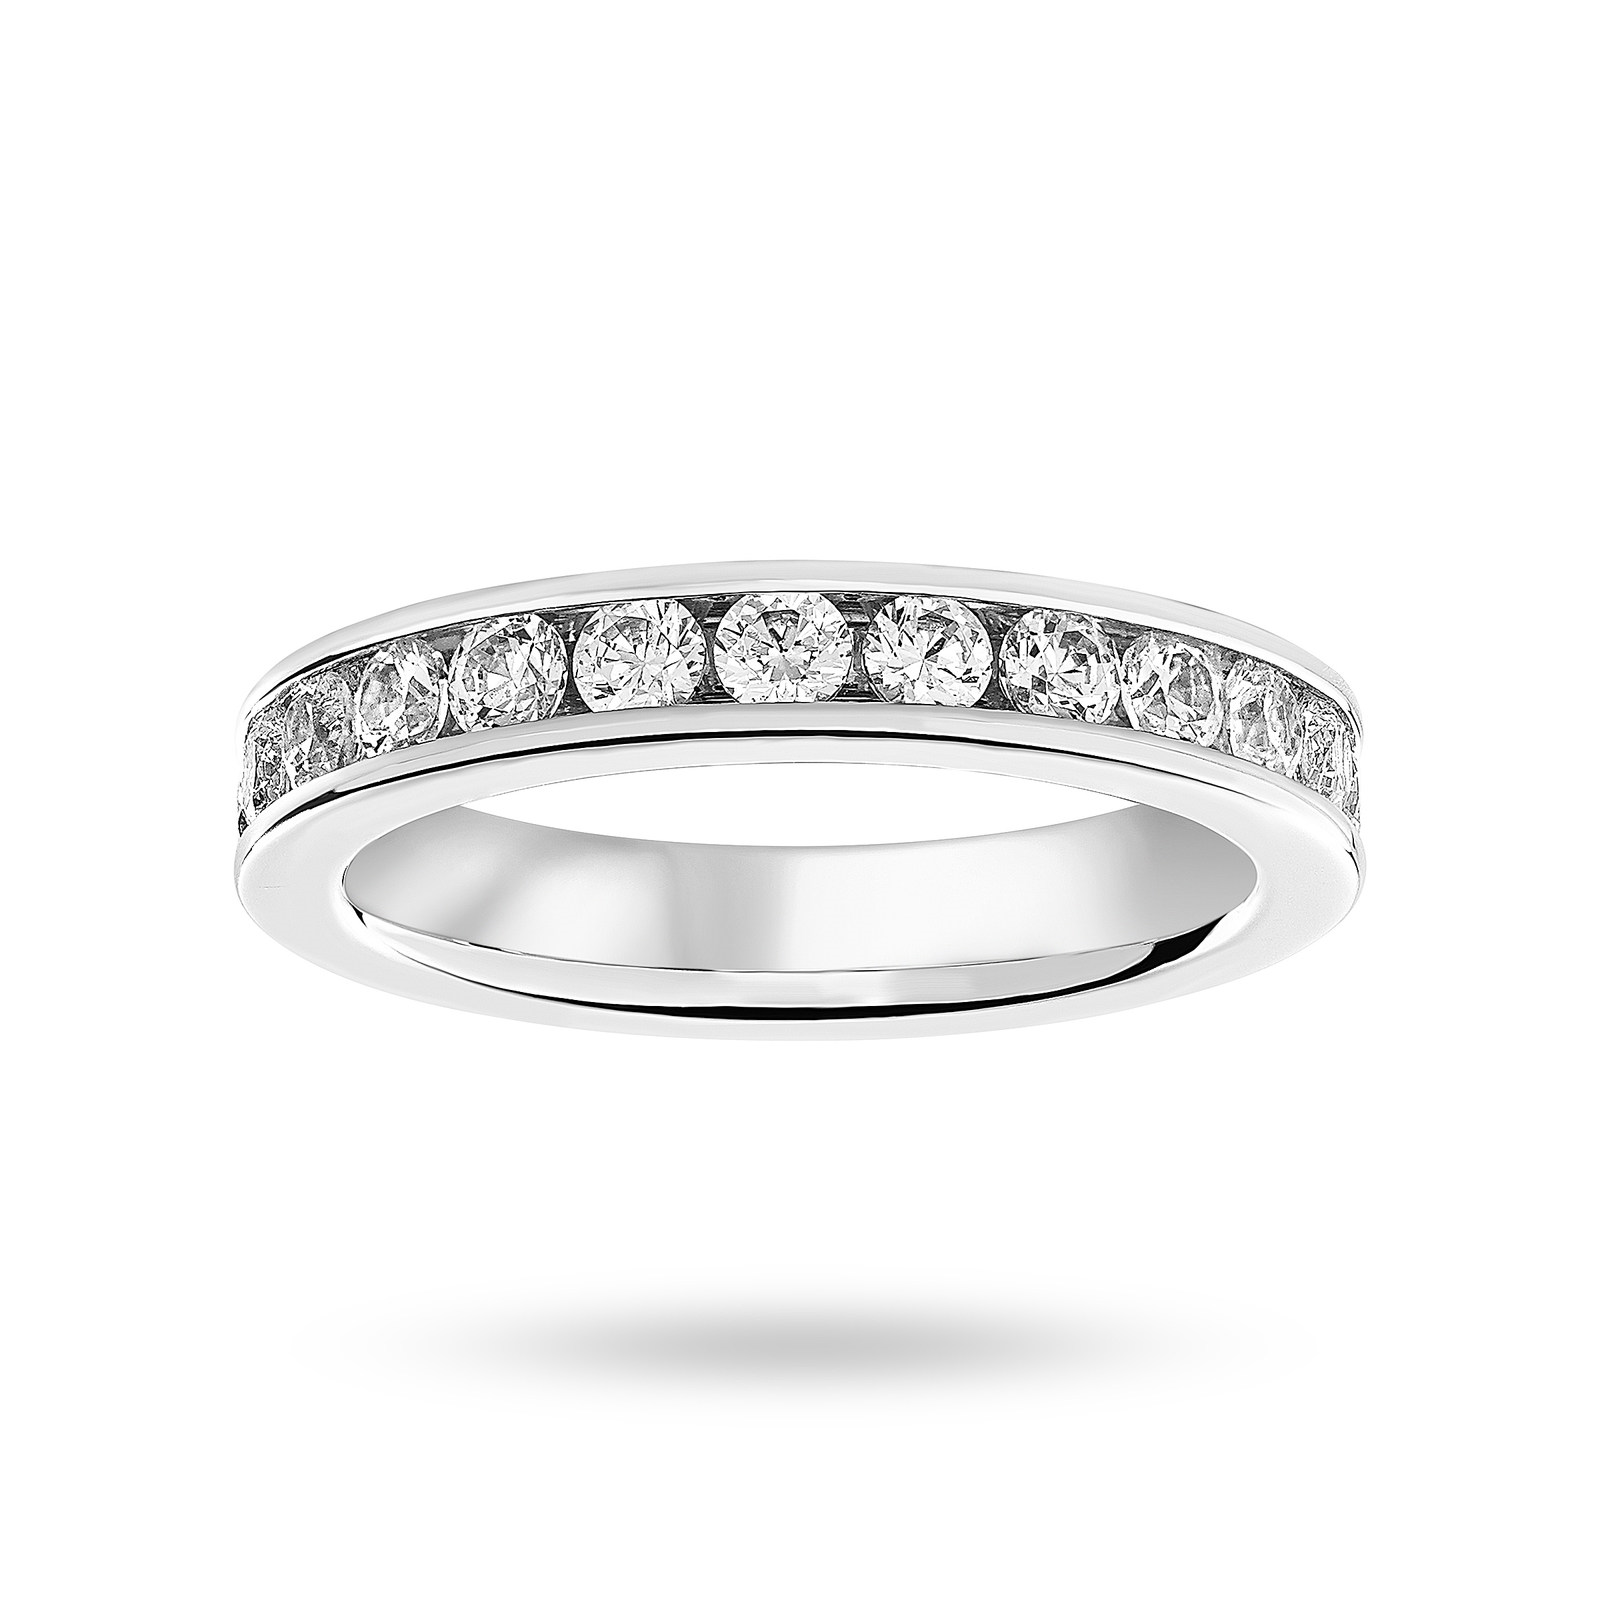 18ct White Gold 1.50ct Brilliant Cut Full Eternity Ring - Ring Size I